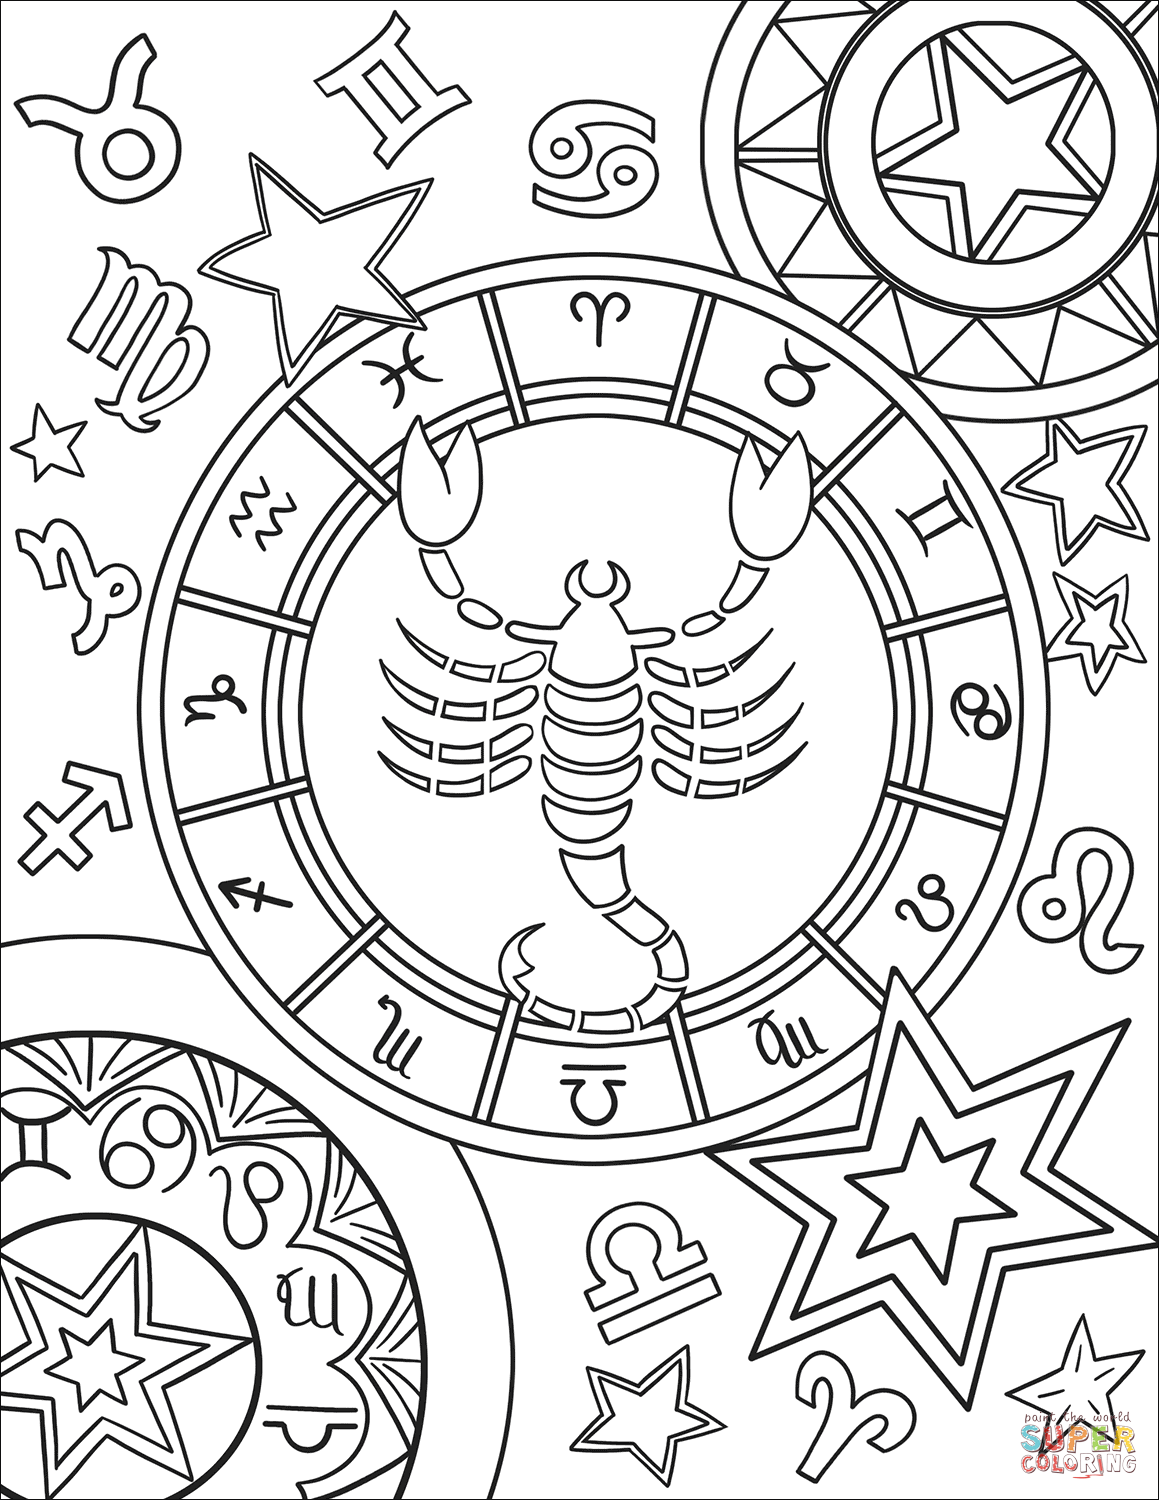 Scorpius Zodiac Sign Coloring Page Free Printable Coloring Pages Geometric Coloring Pages Abstract Coloring Pages Mandala Coloring Pages